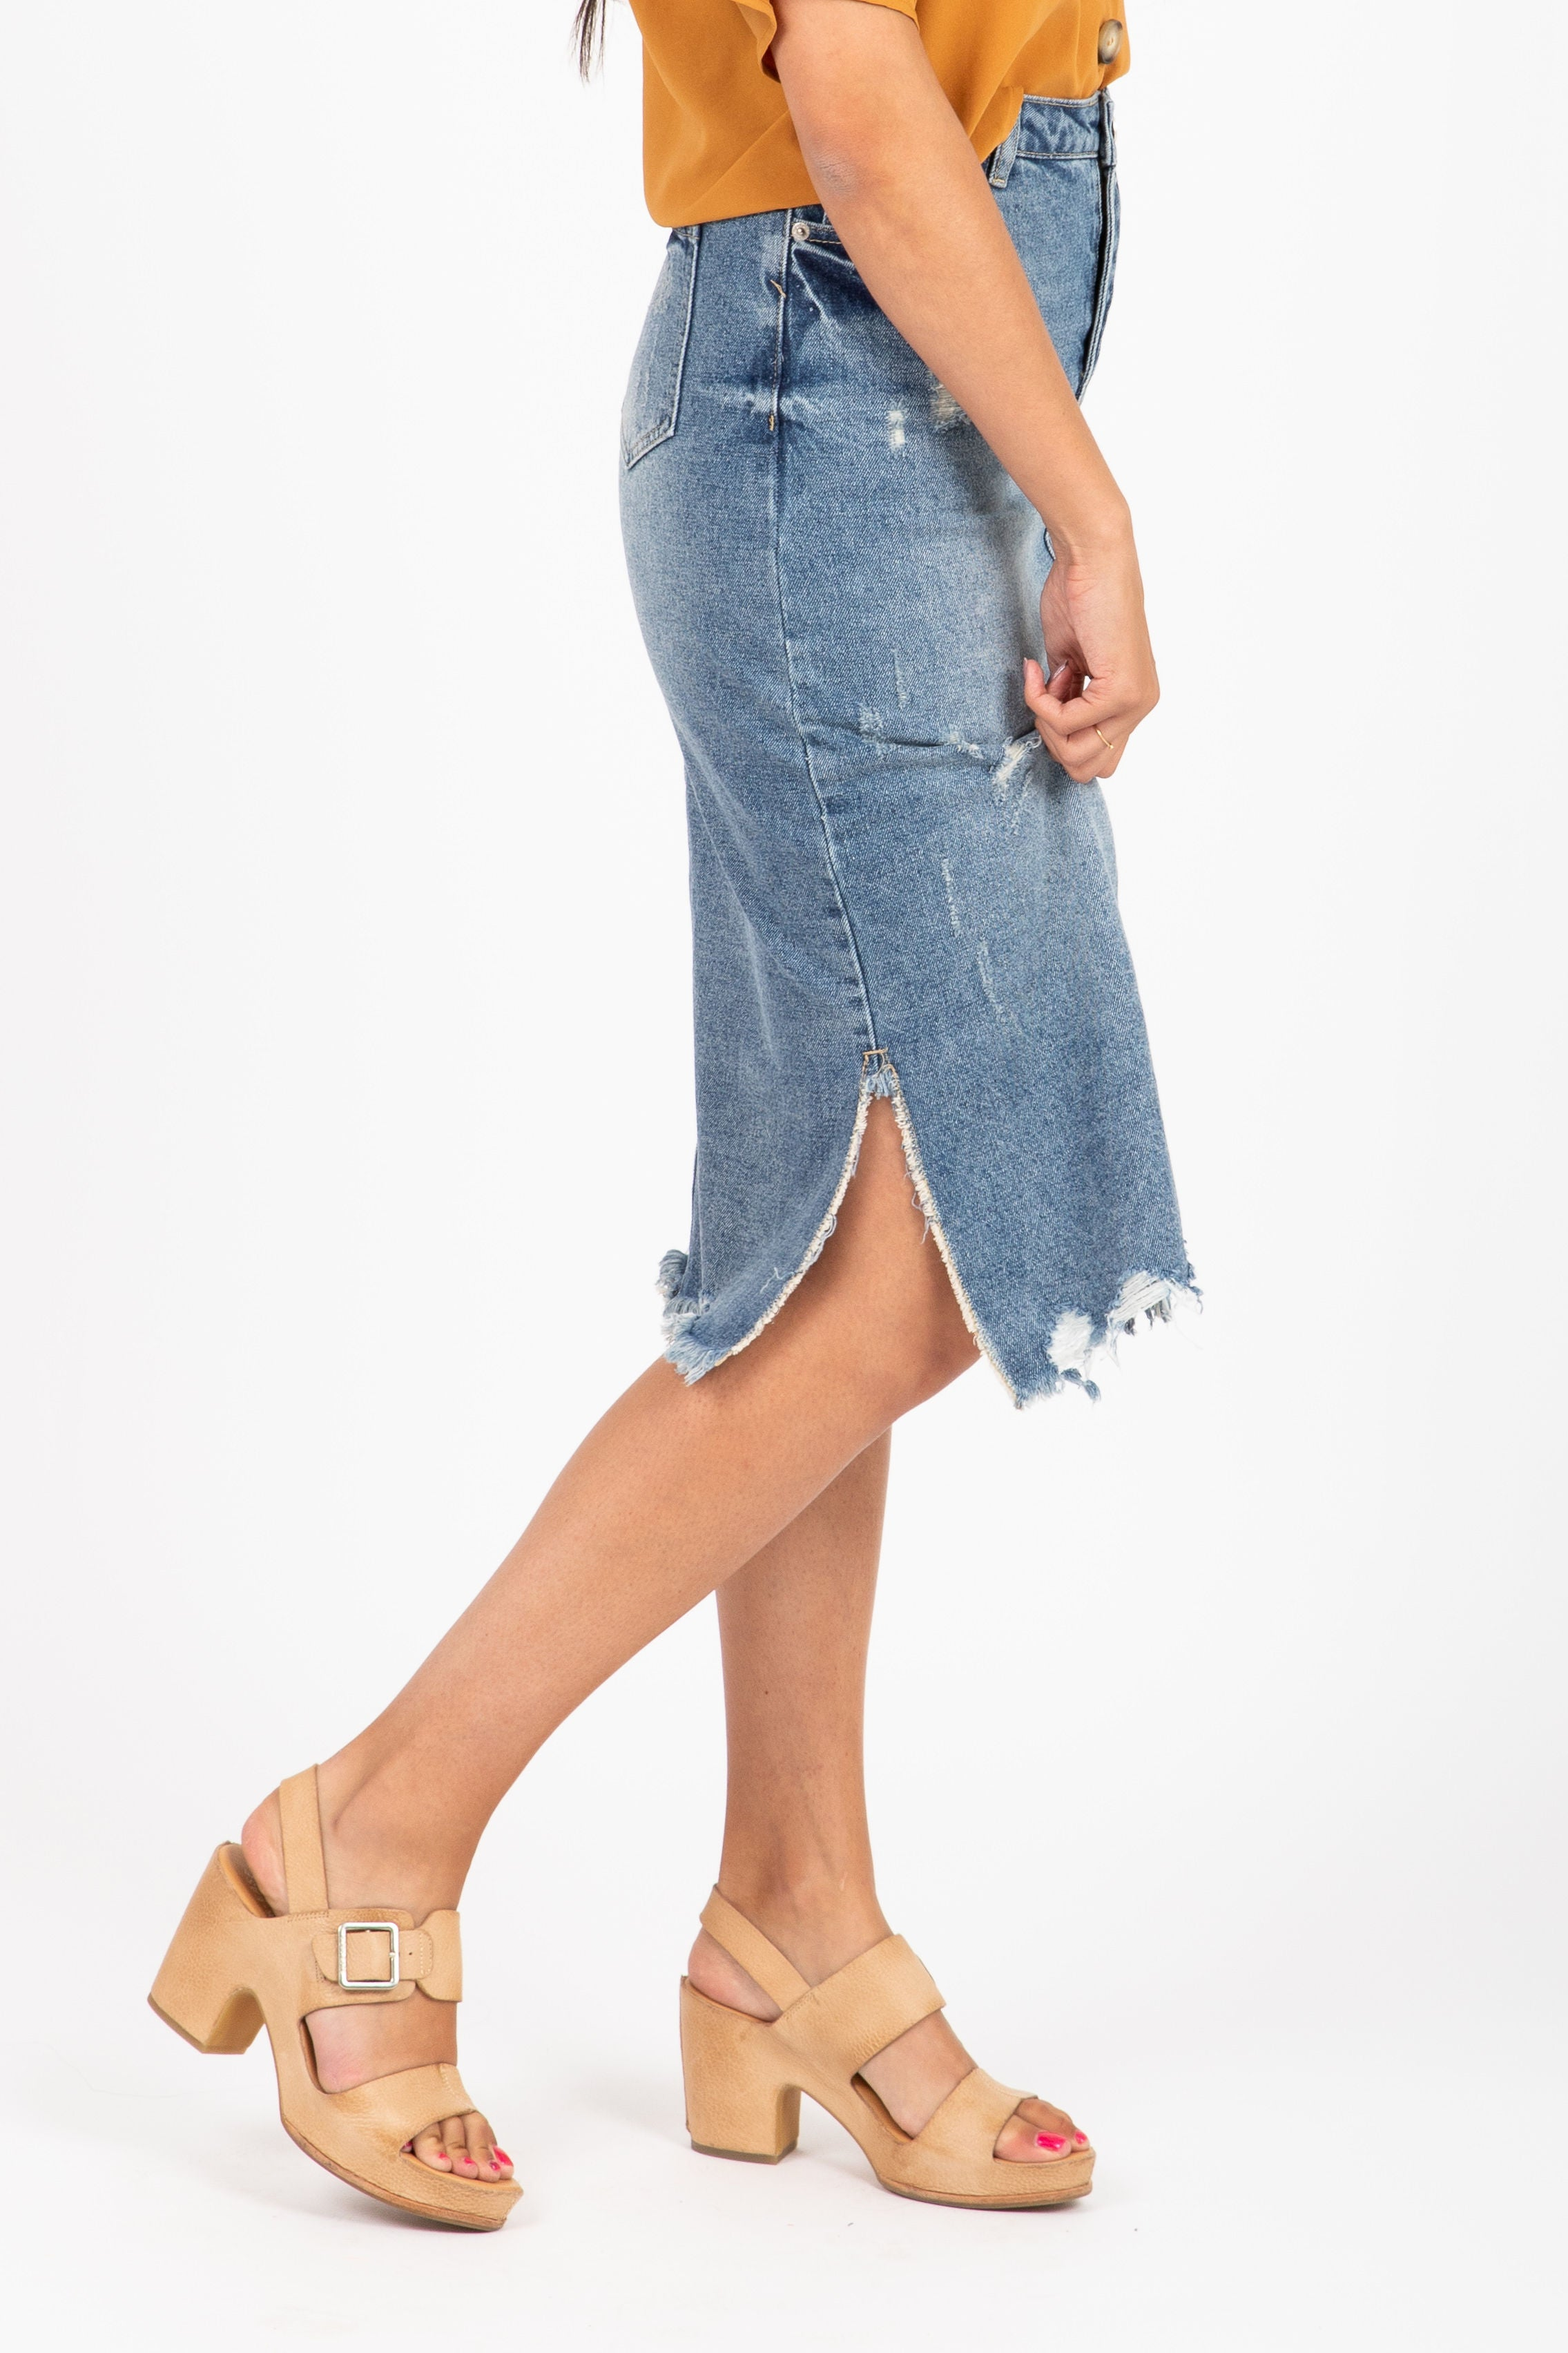 The Surf Denim Midi Skirt in Medium